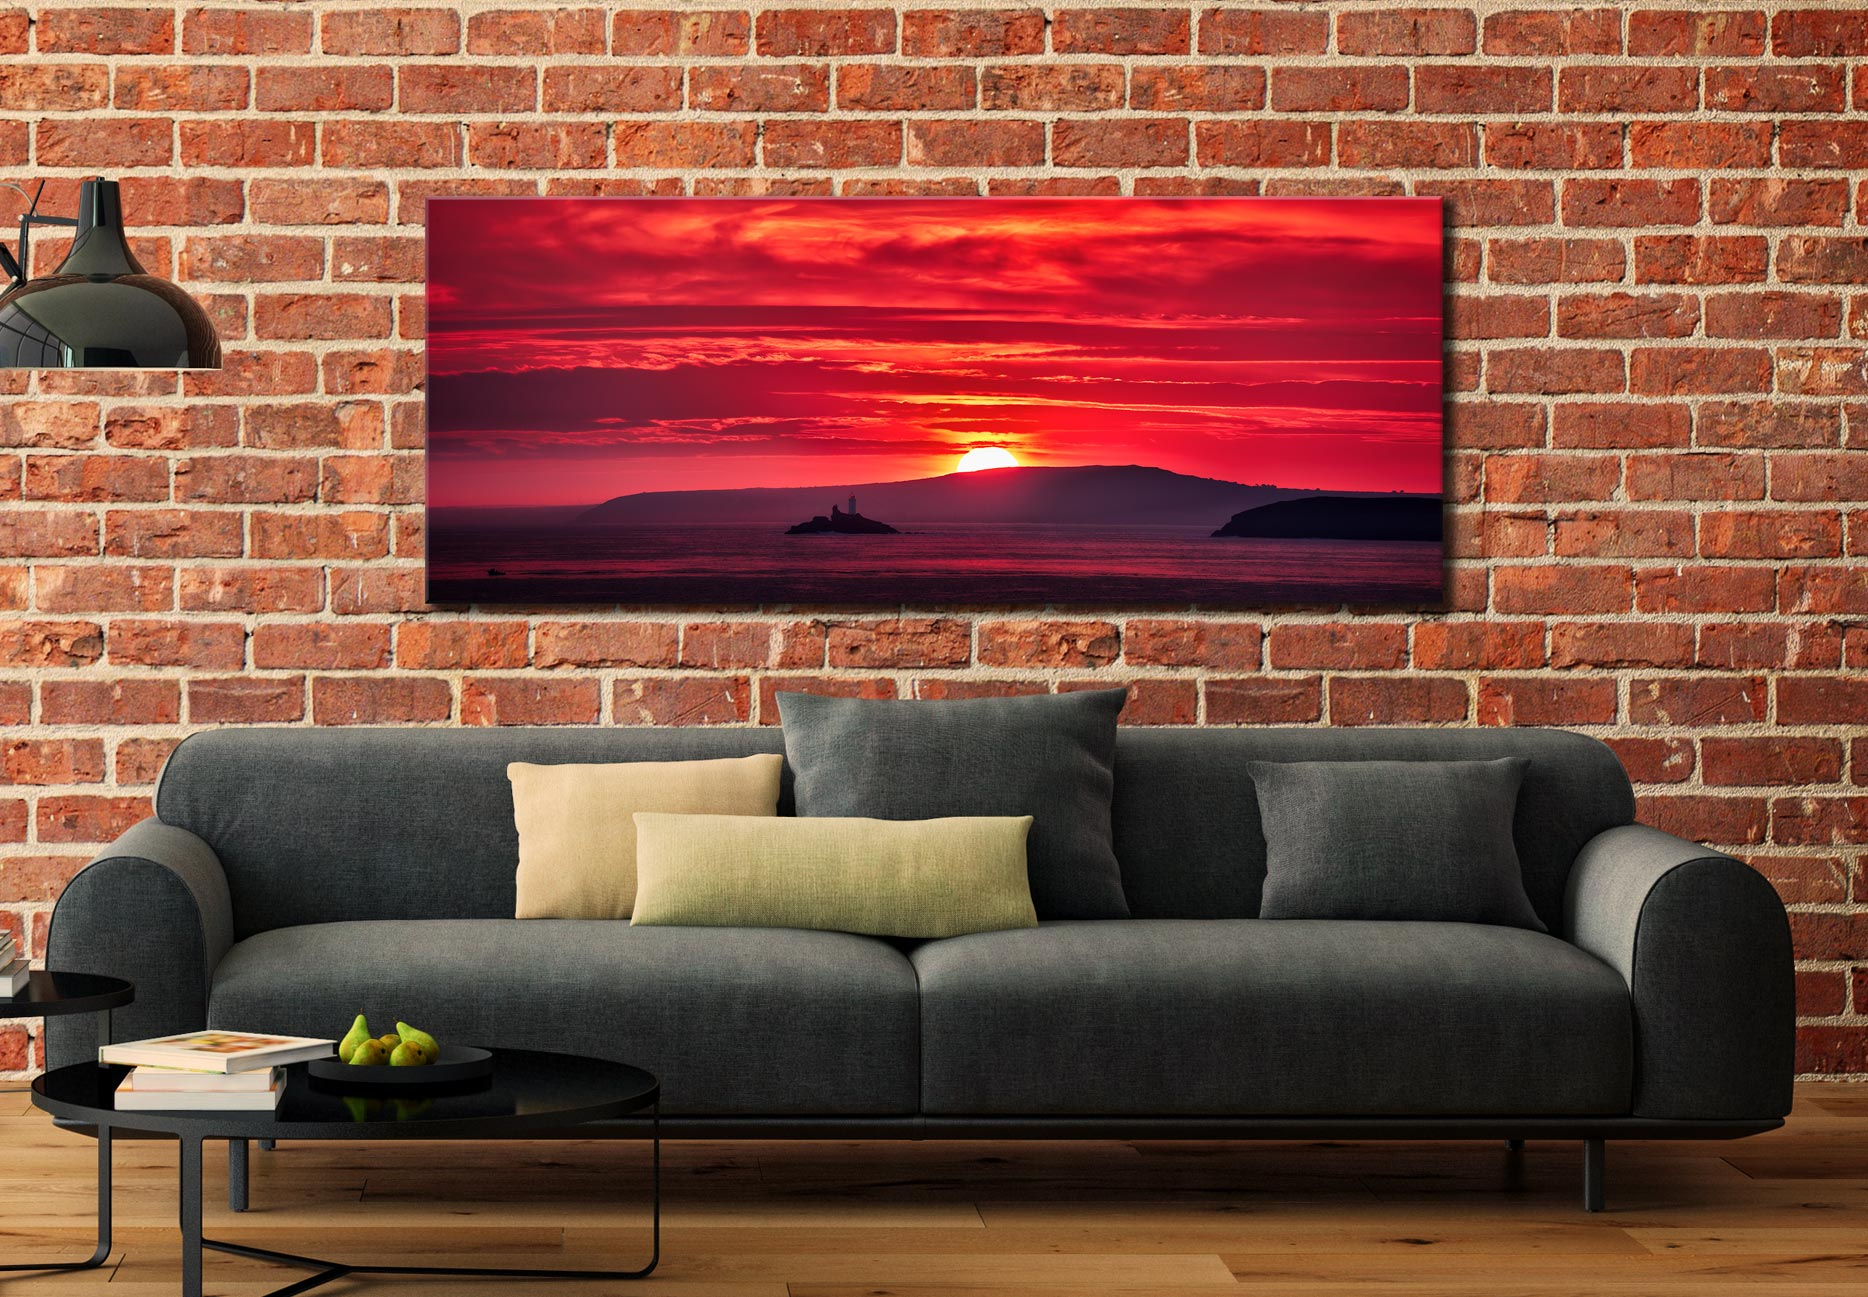 Red Sky in Morning - Canvas Print on Wall